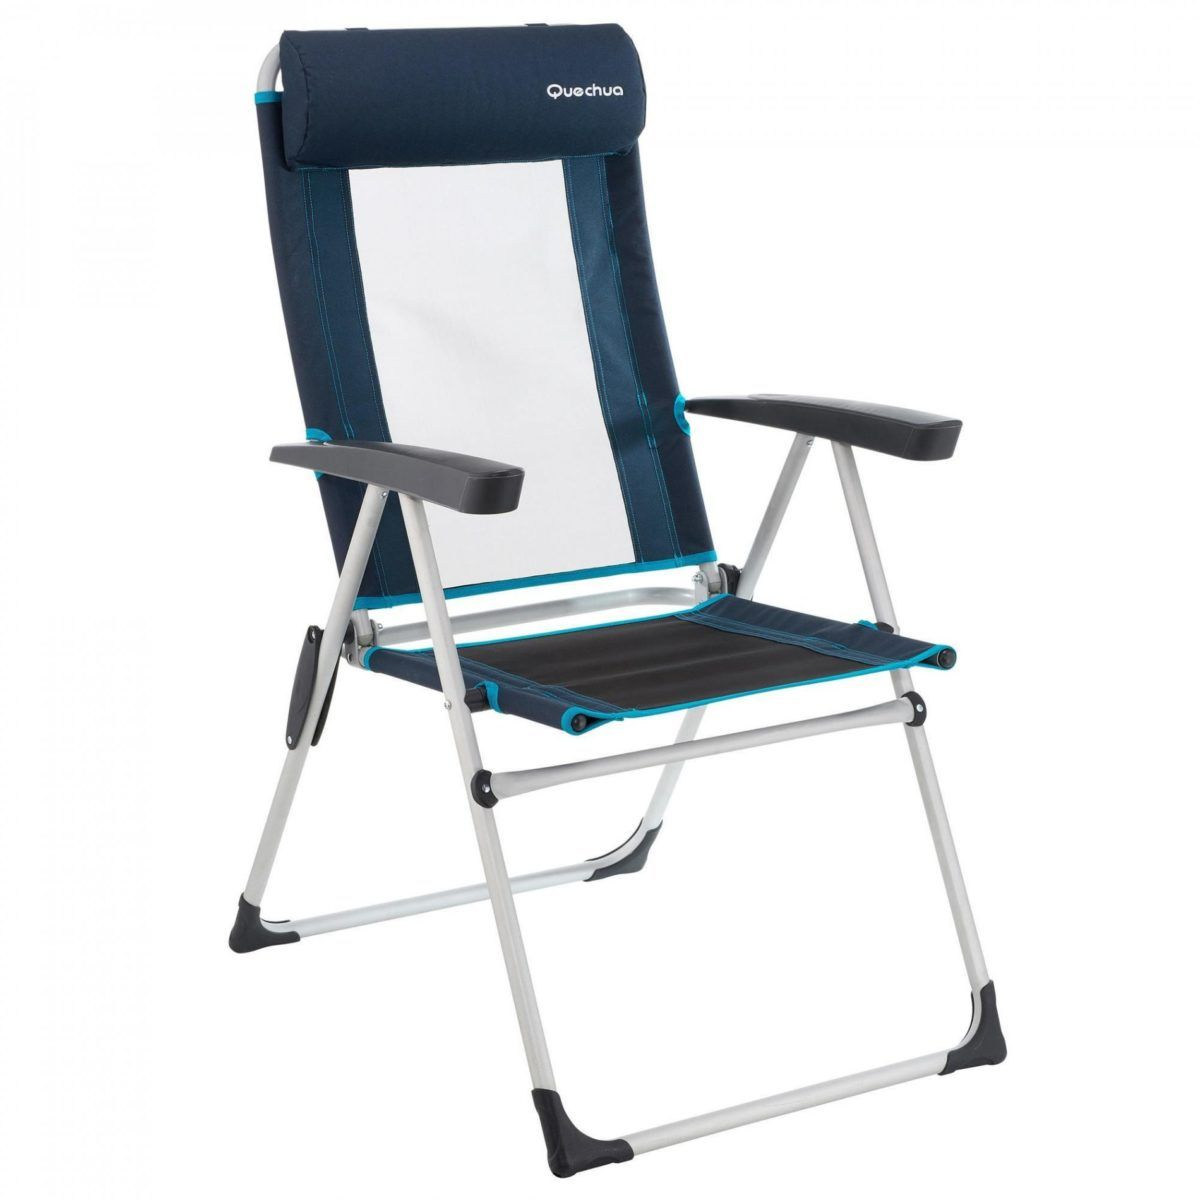 6 Dingen Die Je Nooit Verwacht Op Fauteuil Pliant Camping Decathlon | Fauteuil Buigzame Campi... in 2020 | Camping chairs, Camping table, Folding chair